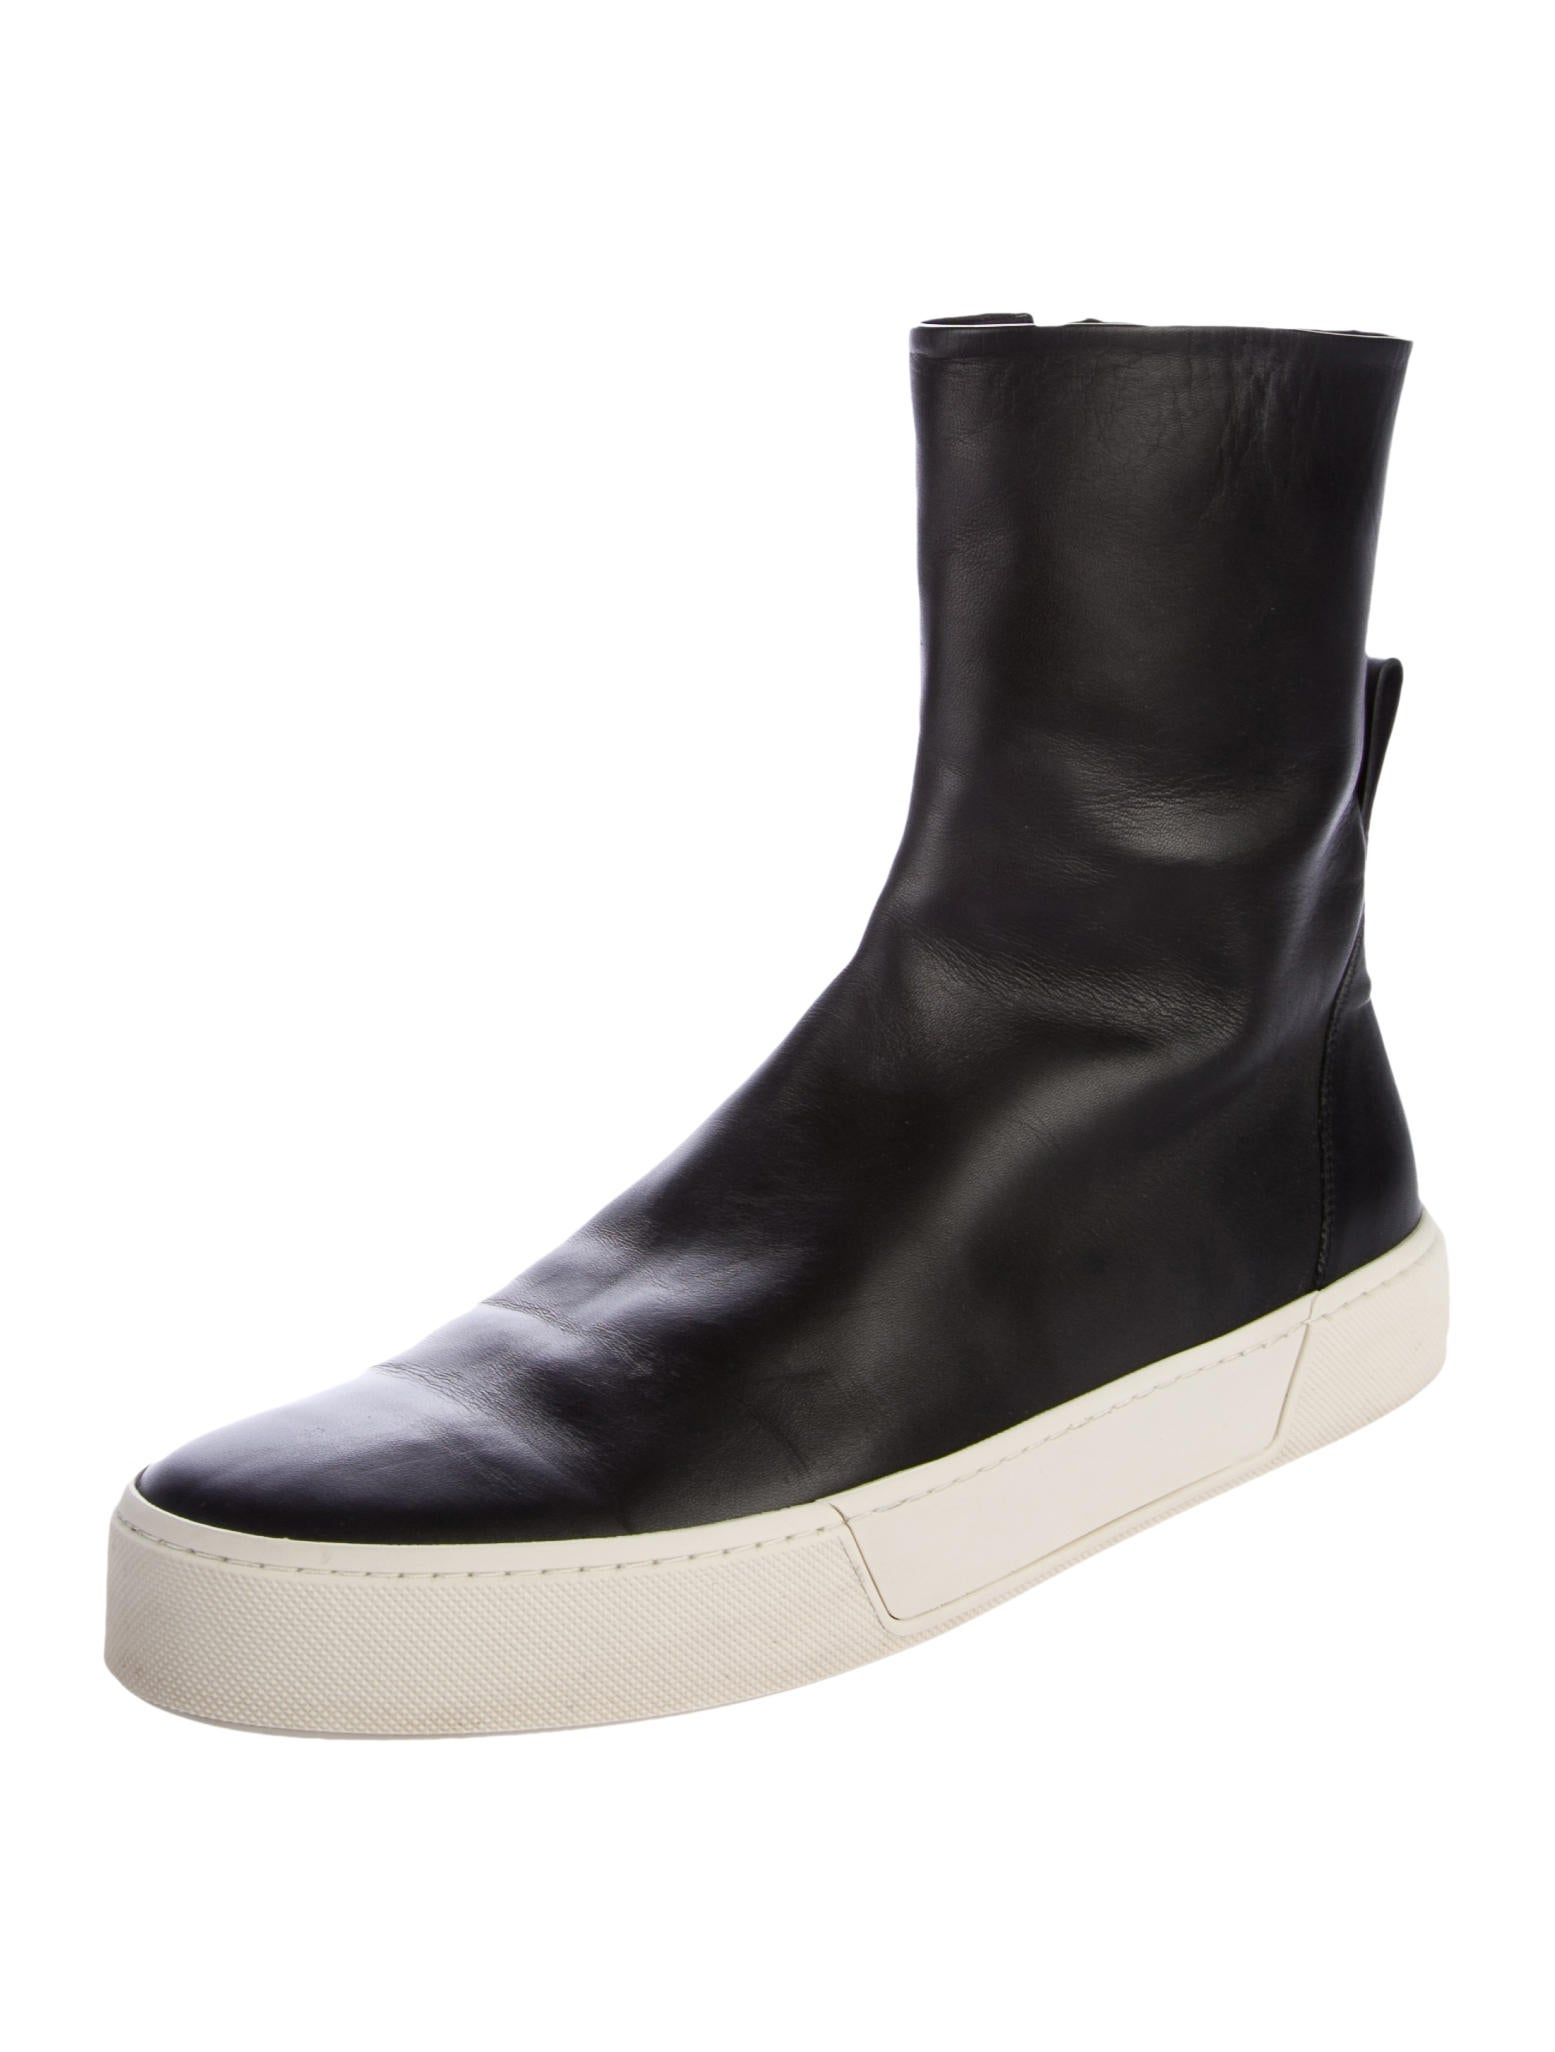 Balenciaga Leather Sneaker Boots - Shoes - BAL54648 | The ...